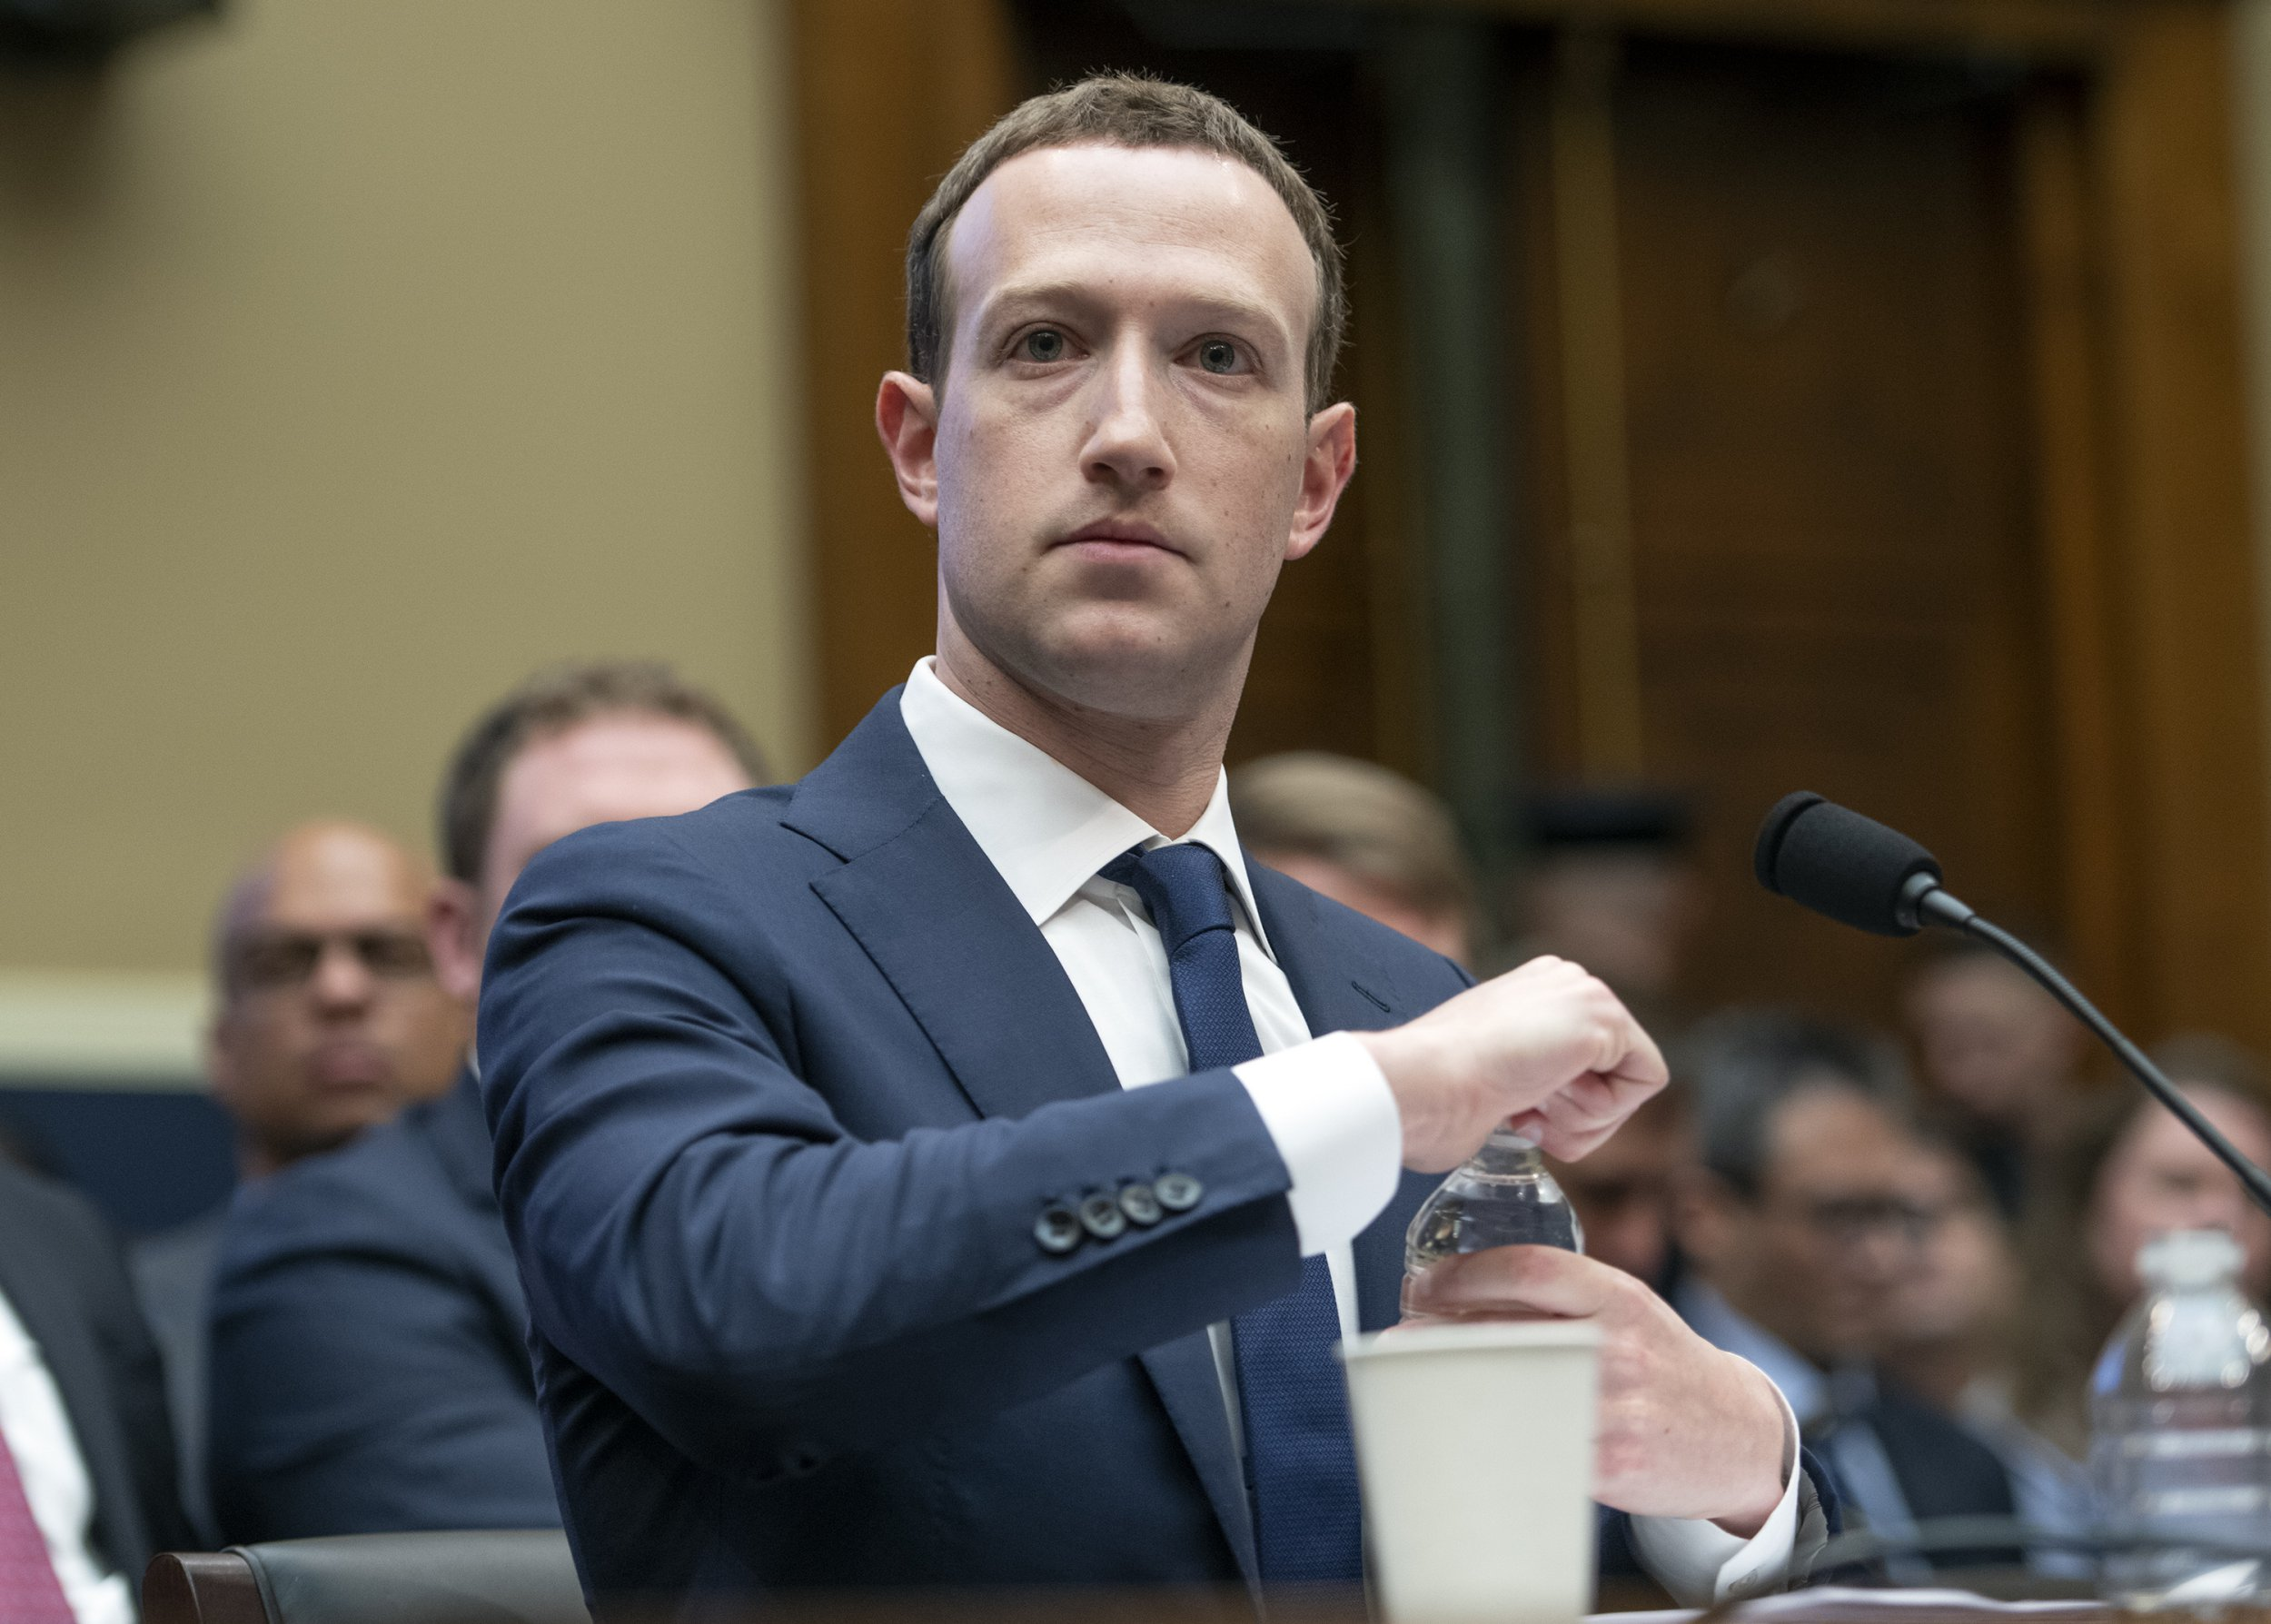 """Mark Zuckerberg, Co-Founder and CEO of Facebook, takes a drink of water as he testifies before a meeting of the United States House Committee on Energy and Commerce during a hearing on """"Facebook: Transparency and Use of Consumer Data,"""" on Capitol Hill in Washington, DC on Wednesday, April 11, 2018. Credit: Ron Sachs / CNP (RESTRICTION: NO New York or New Jersey Newspapers or newspapers within a 75 mile radius of New York City) -NO WIRE SERVICE- Photo: Ron Sachs/Consolidated/dpa"""